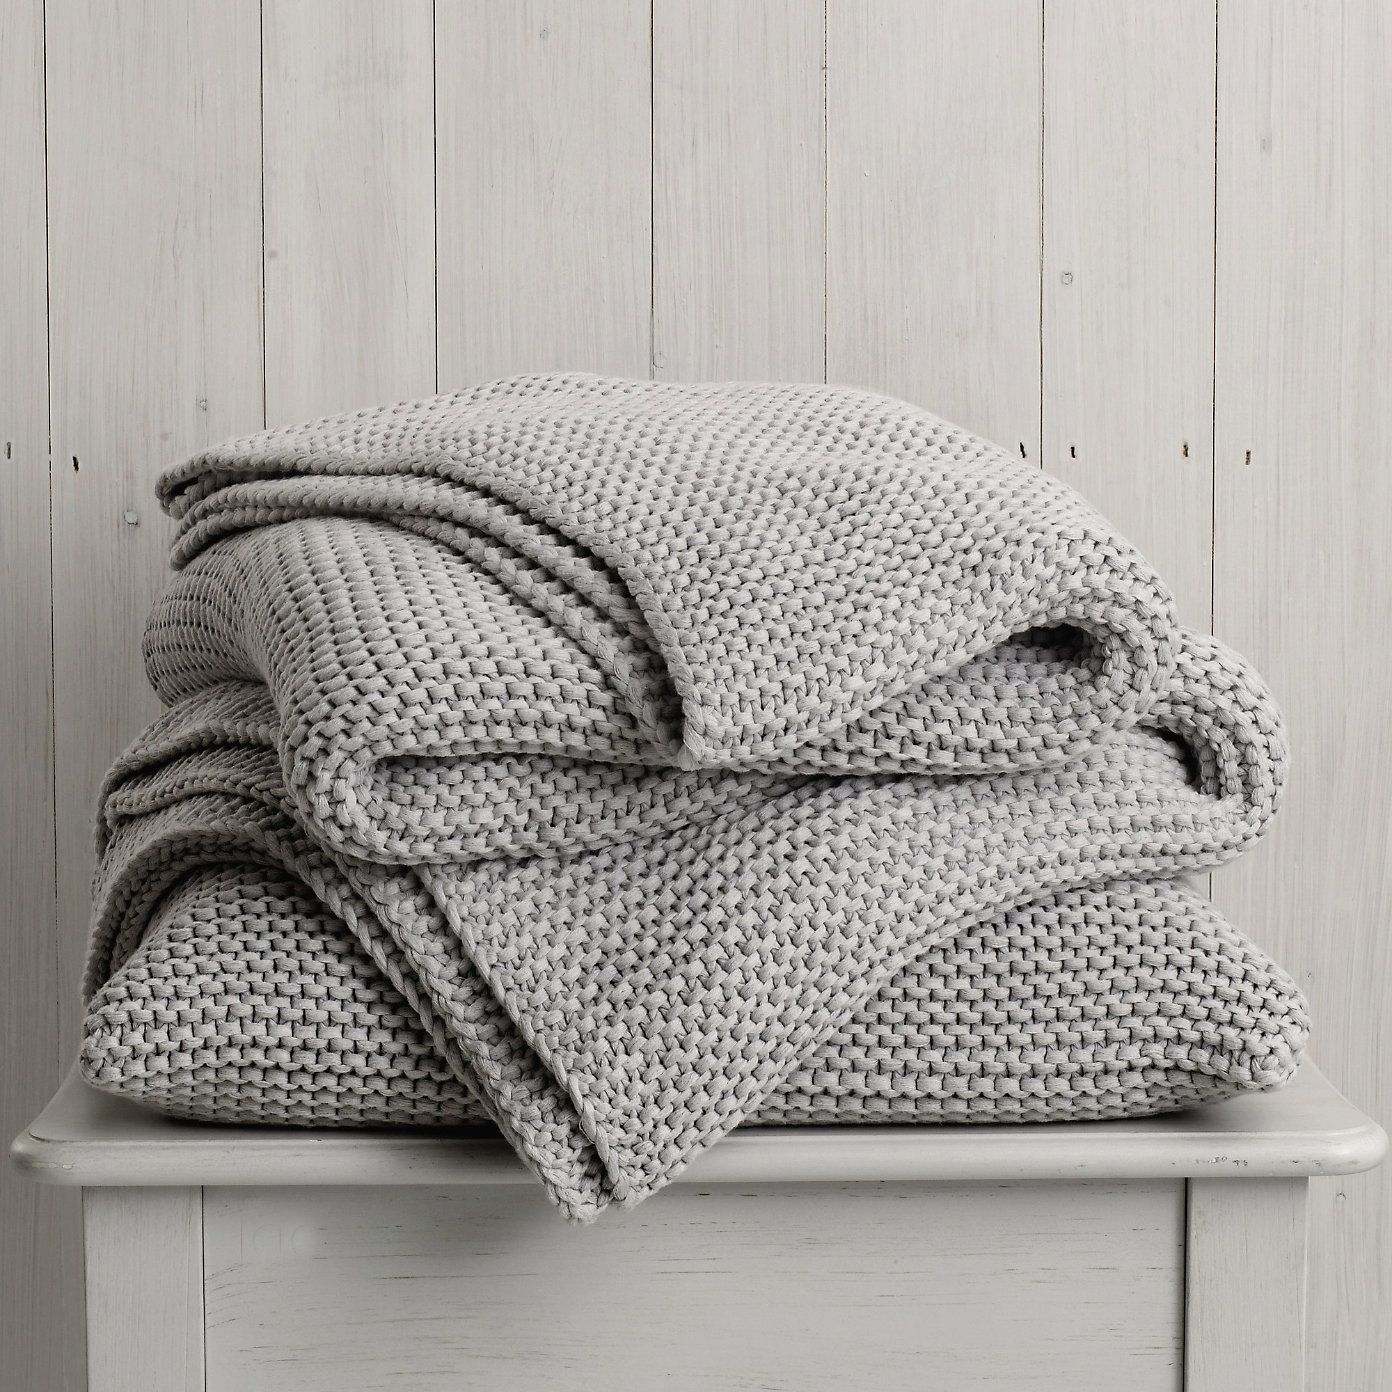 Grey Knit Throw Pillow : The 25+ best Grey throws ideas on Pinterest Grey throw pillows, Throws for sofas and Knitted ...